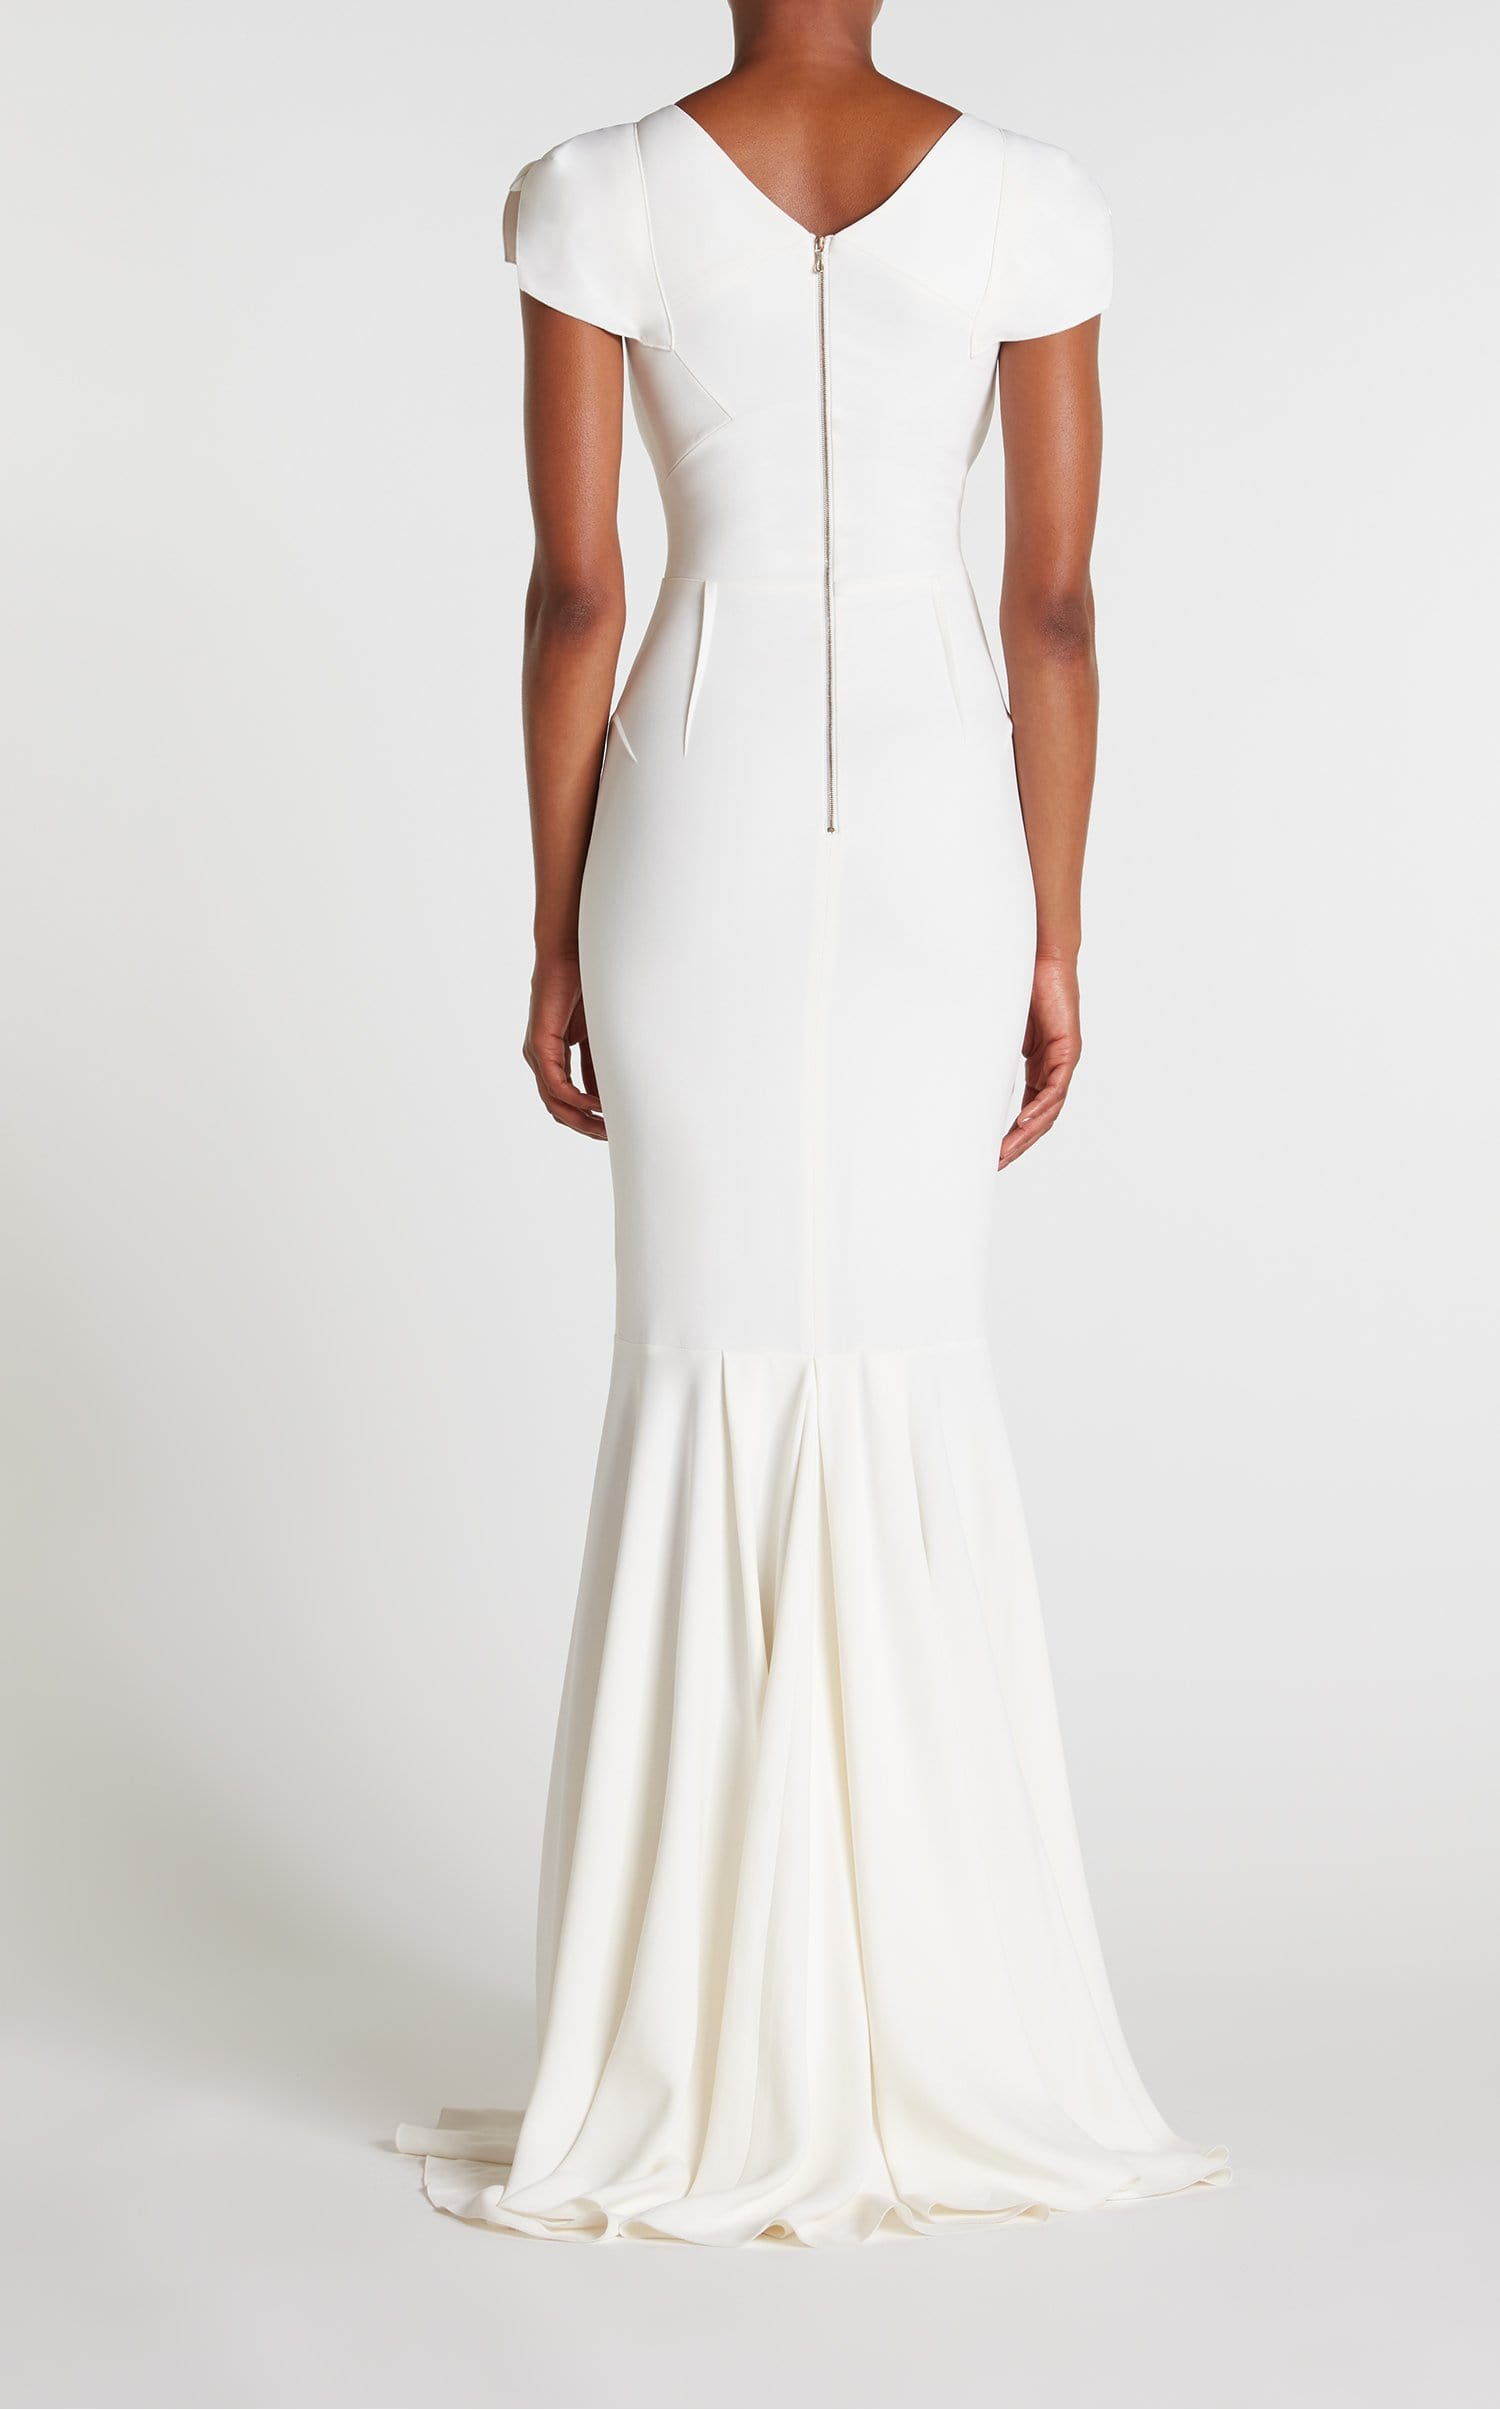 Marilla Gown In White from Roland Mouret